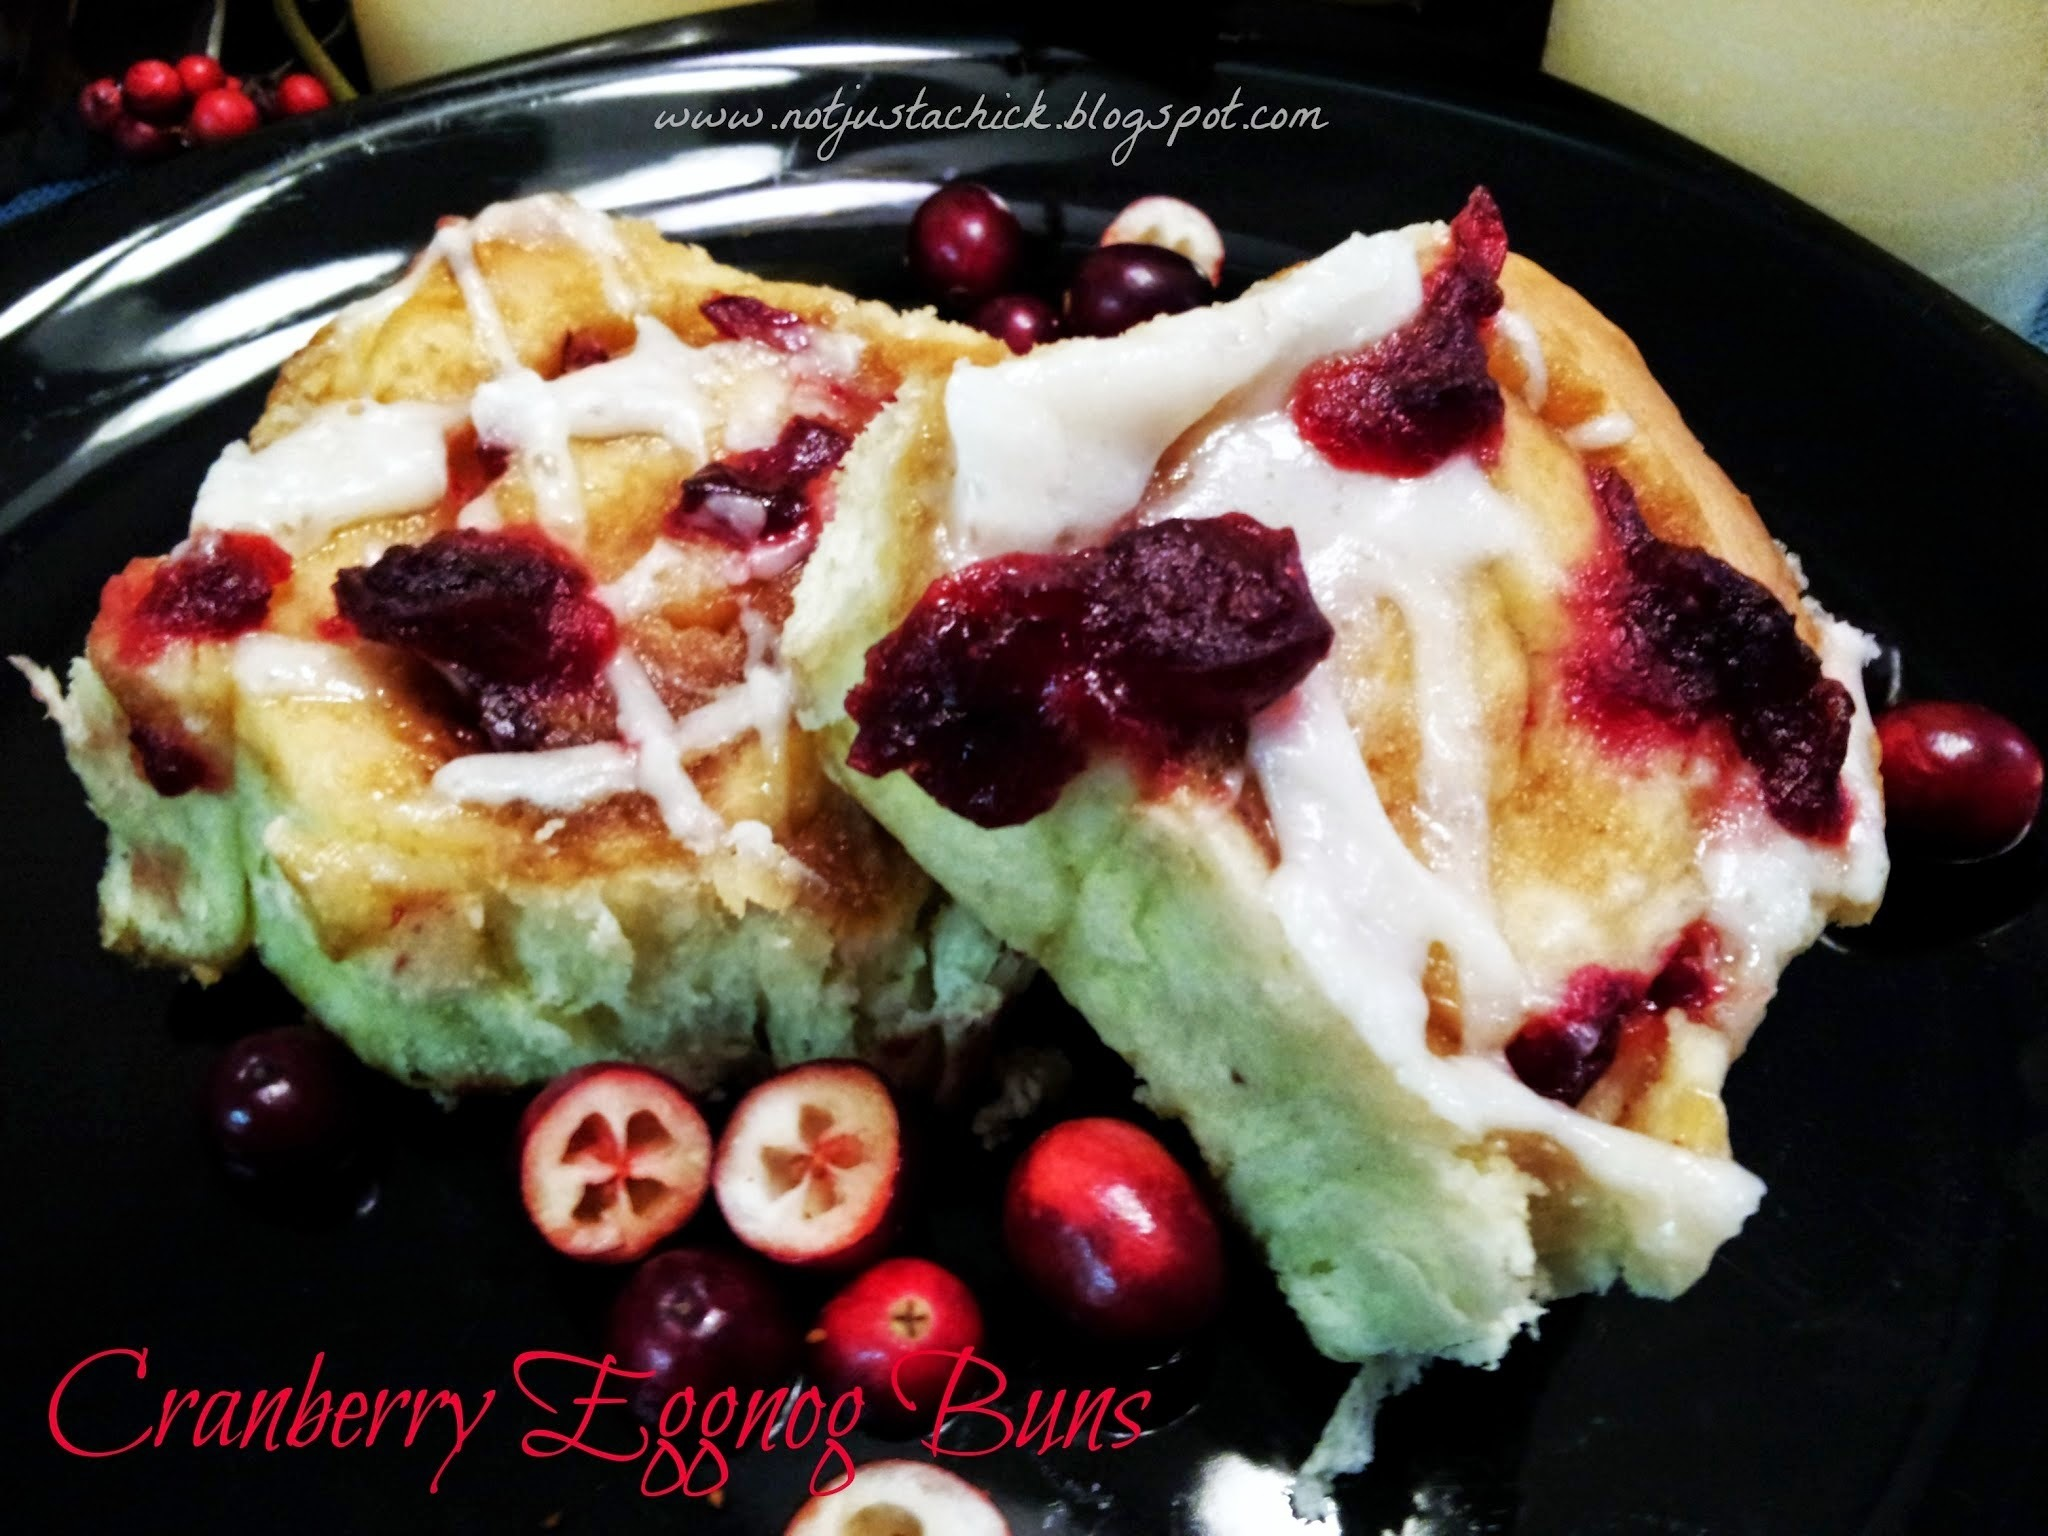 Year # 2.... New Beginnings and Fresh Cranberry Eggnog Cinnamon Buns